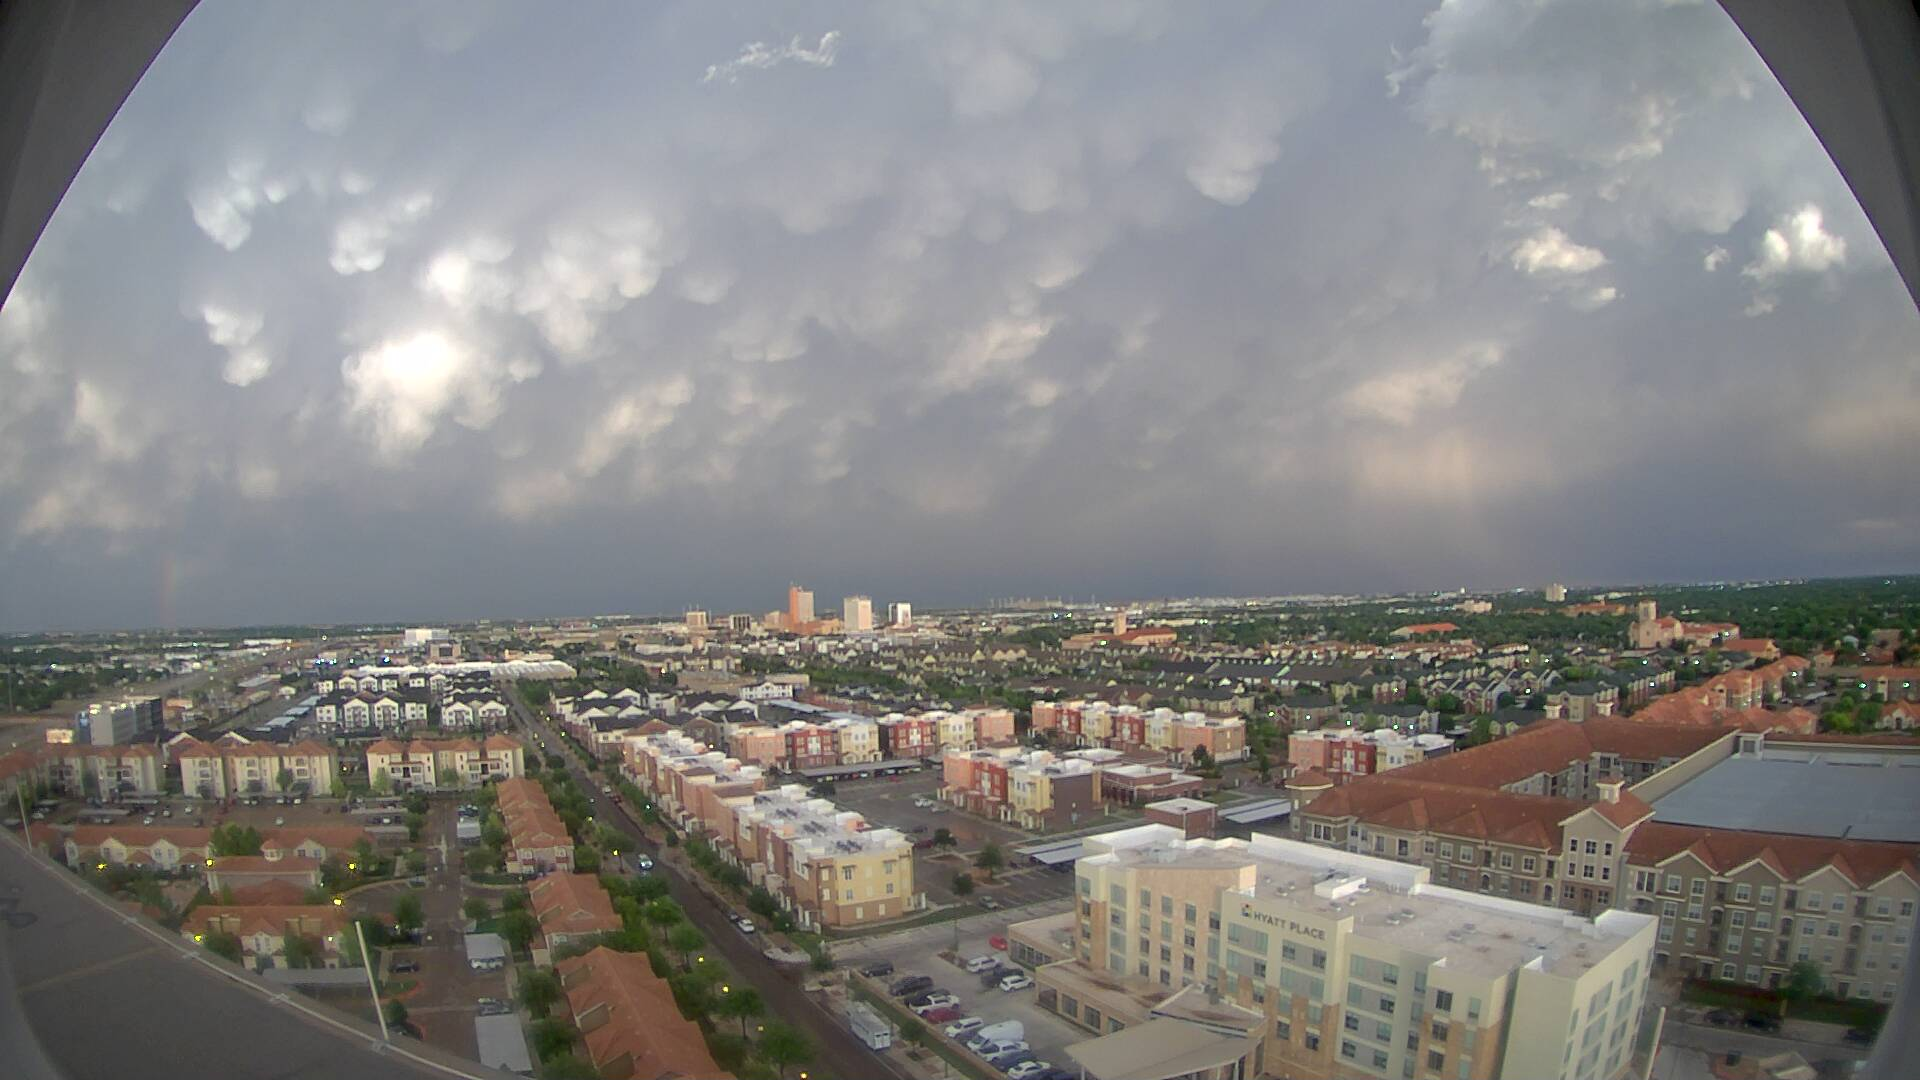 Looking east from Overton, in Lubbock, Saturday evening (23 May 2020). The image is courtesy of KAMC.